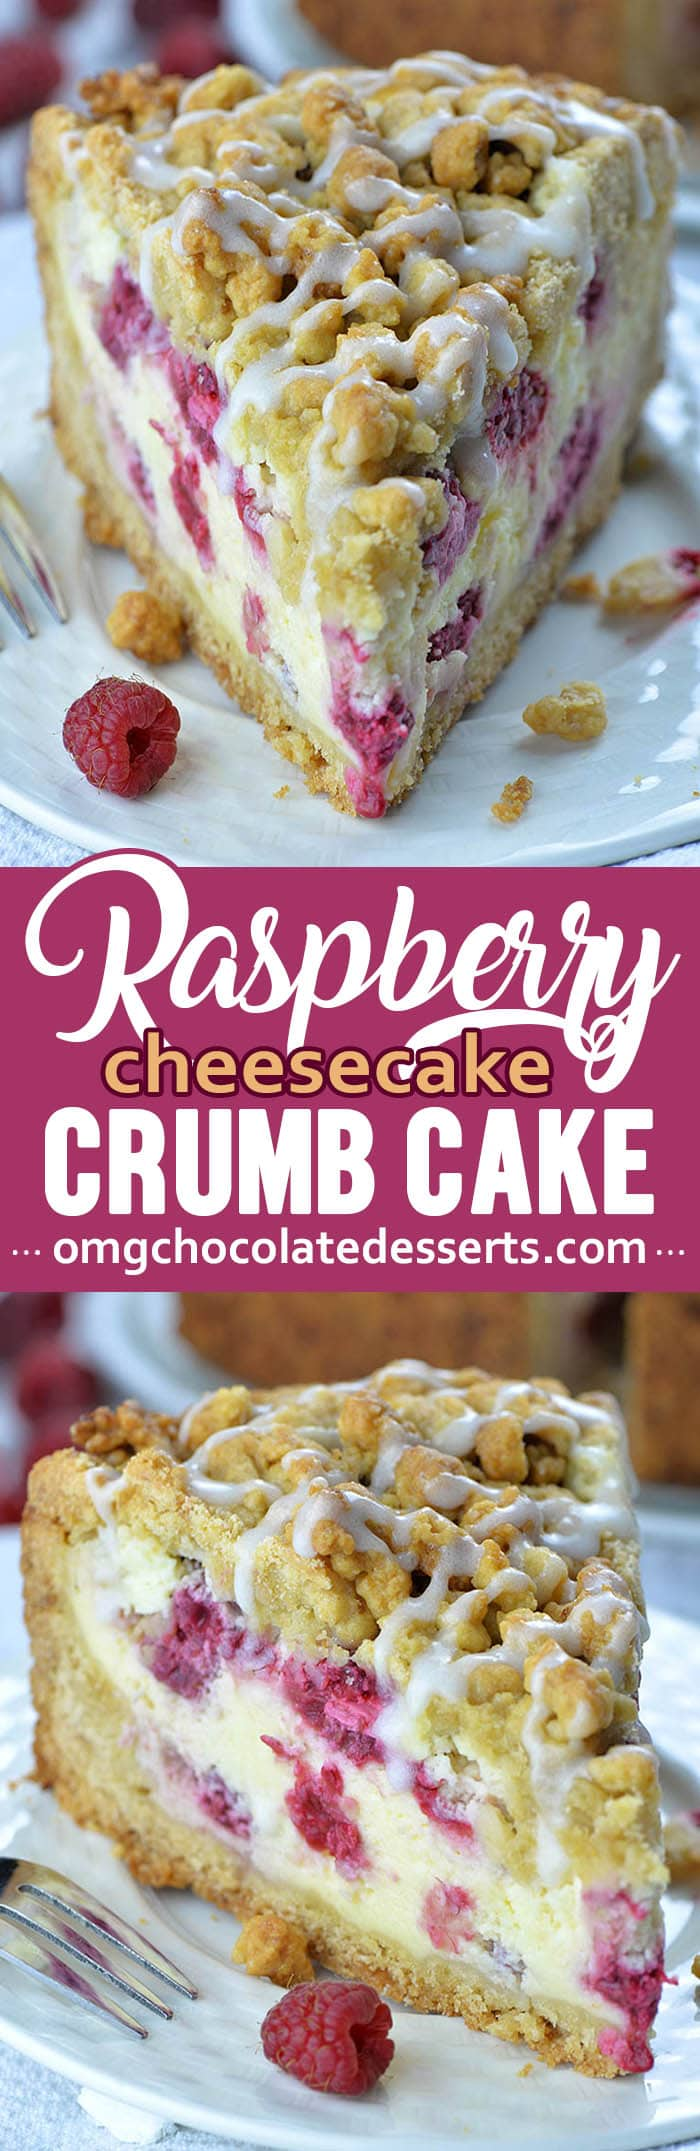 This Raspberry Cheesecake Crumb Cake is a great way to sneak delicious dessert hidden inside your breakfast cake.